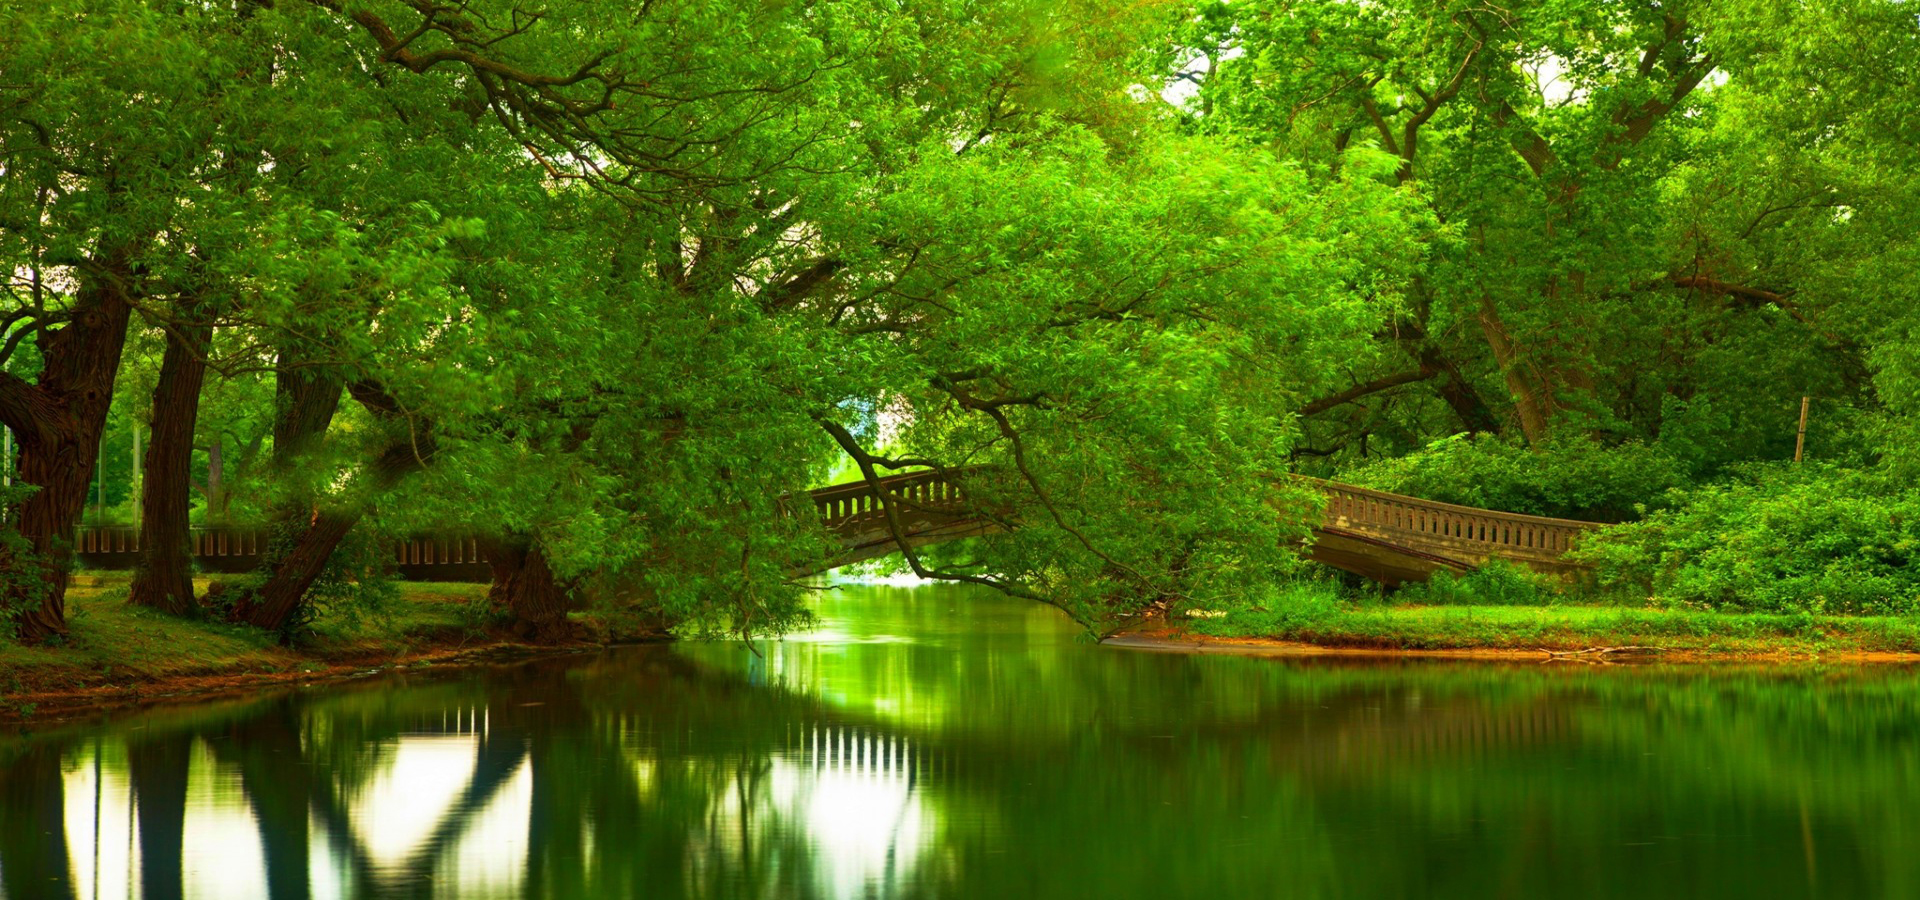 greenery bridges  greenery  landscape  bridges background